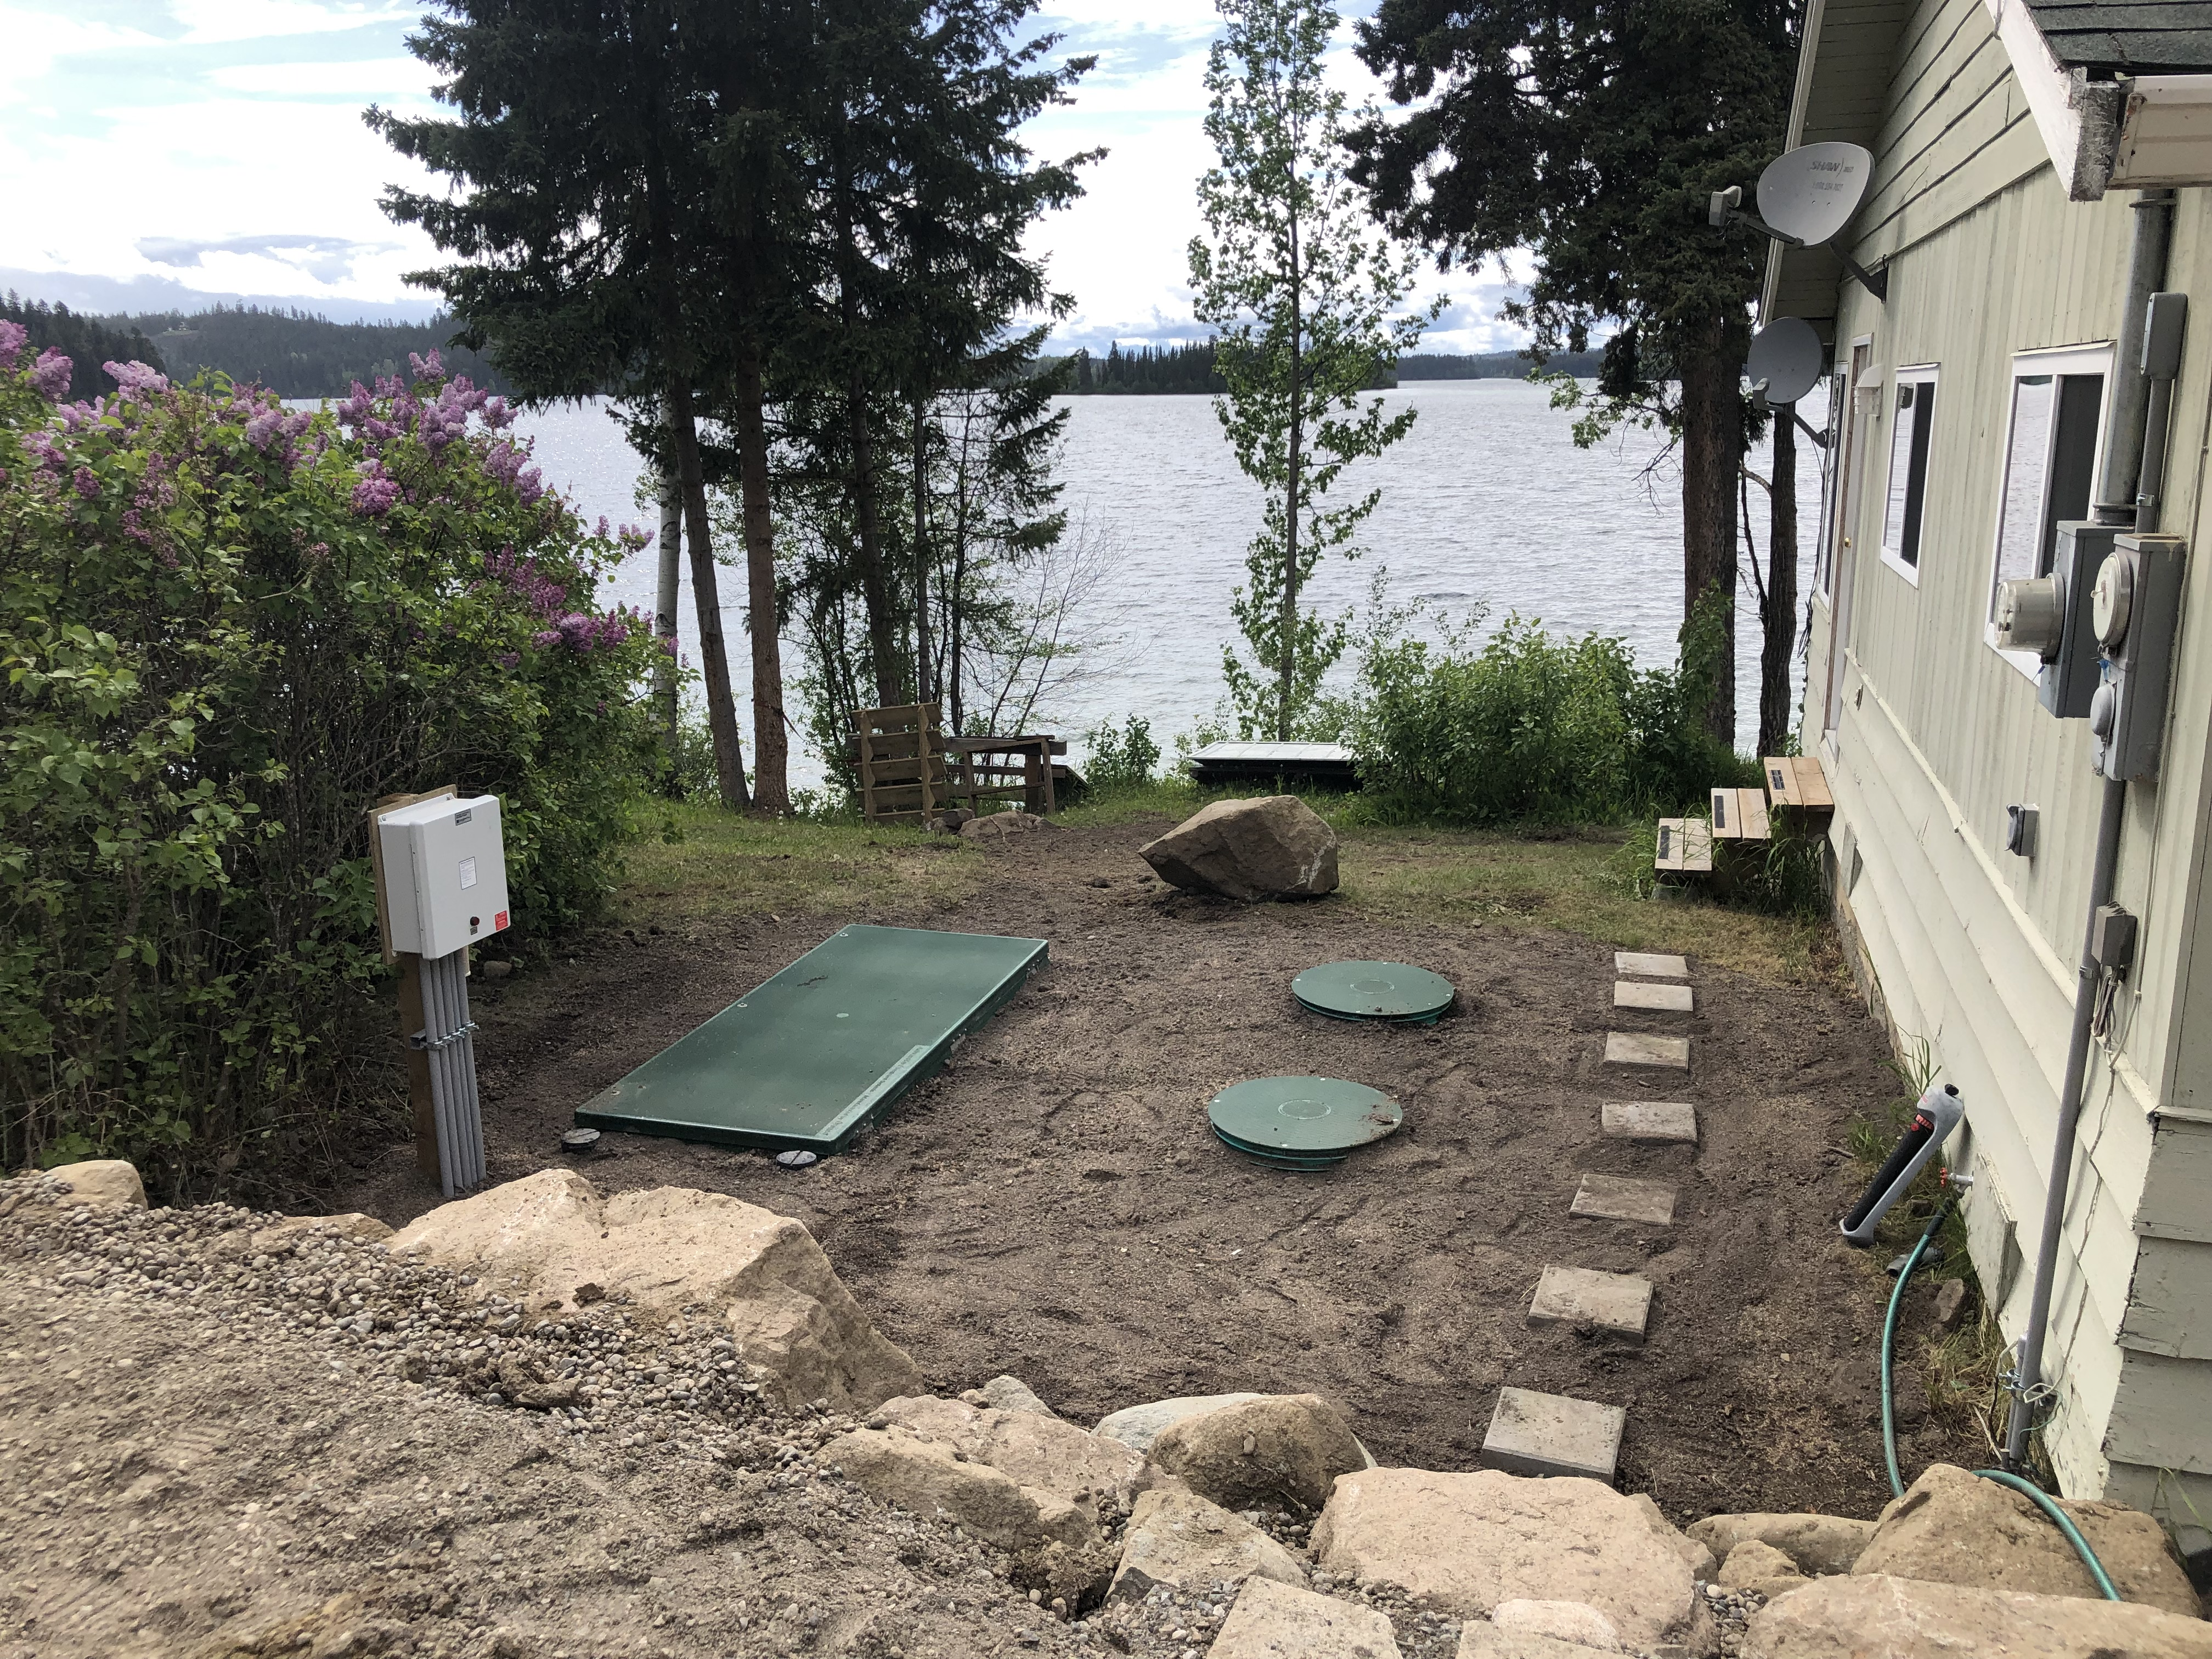 Installing a new septic system at the cottage